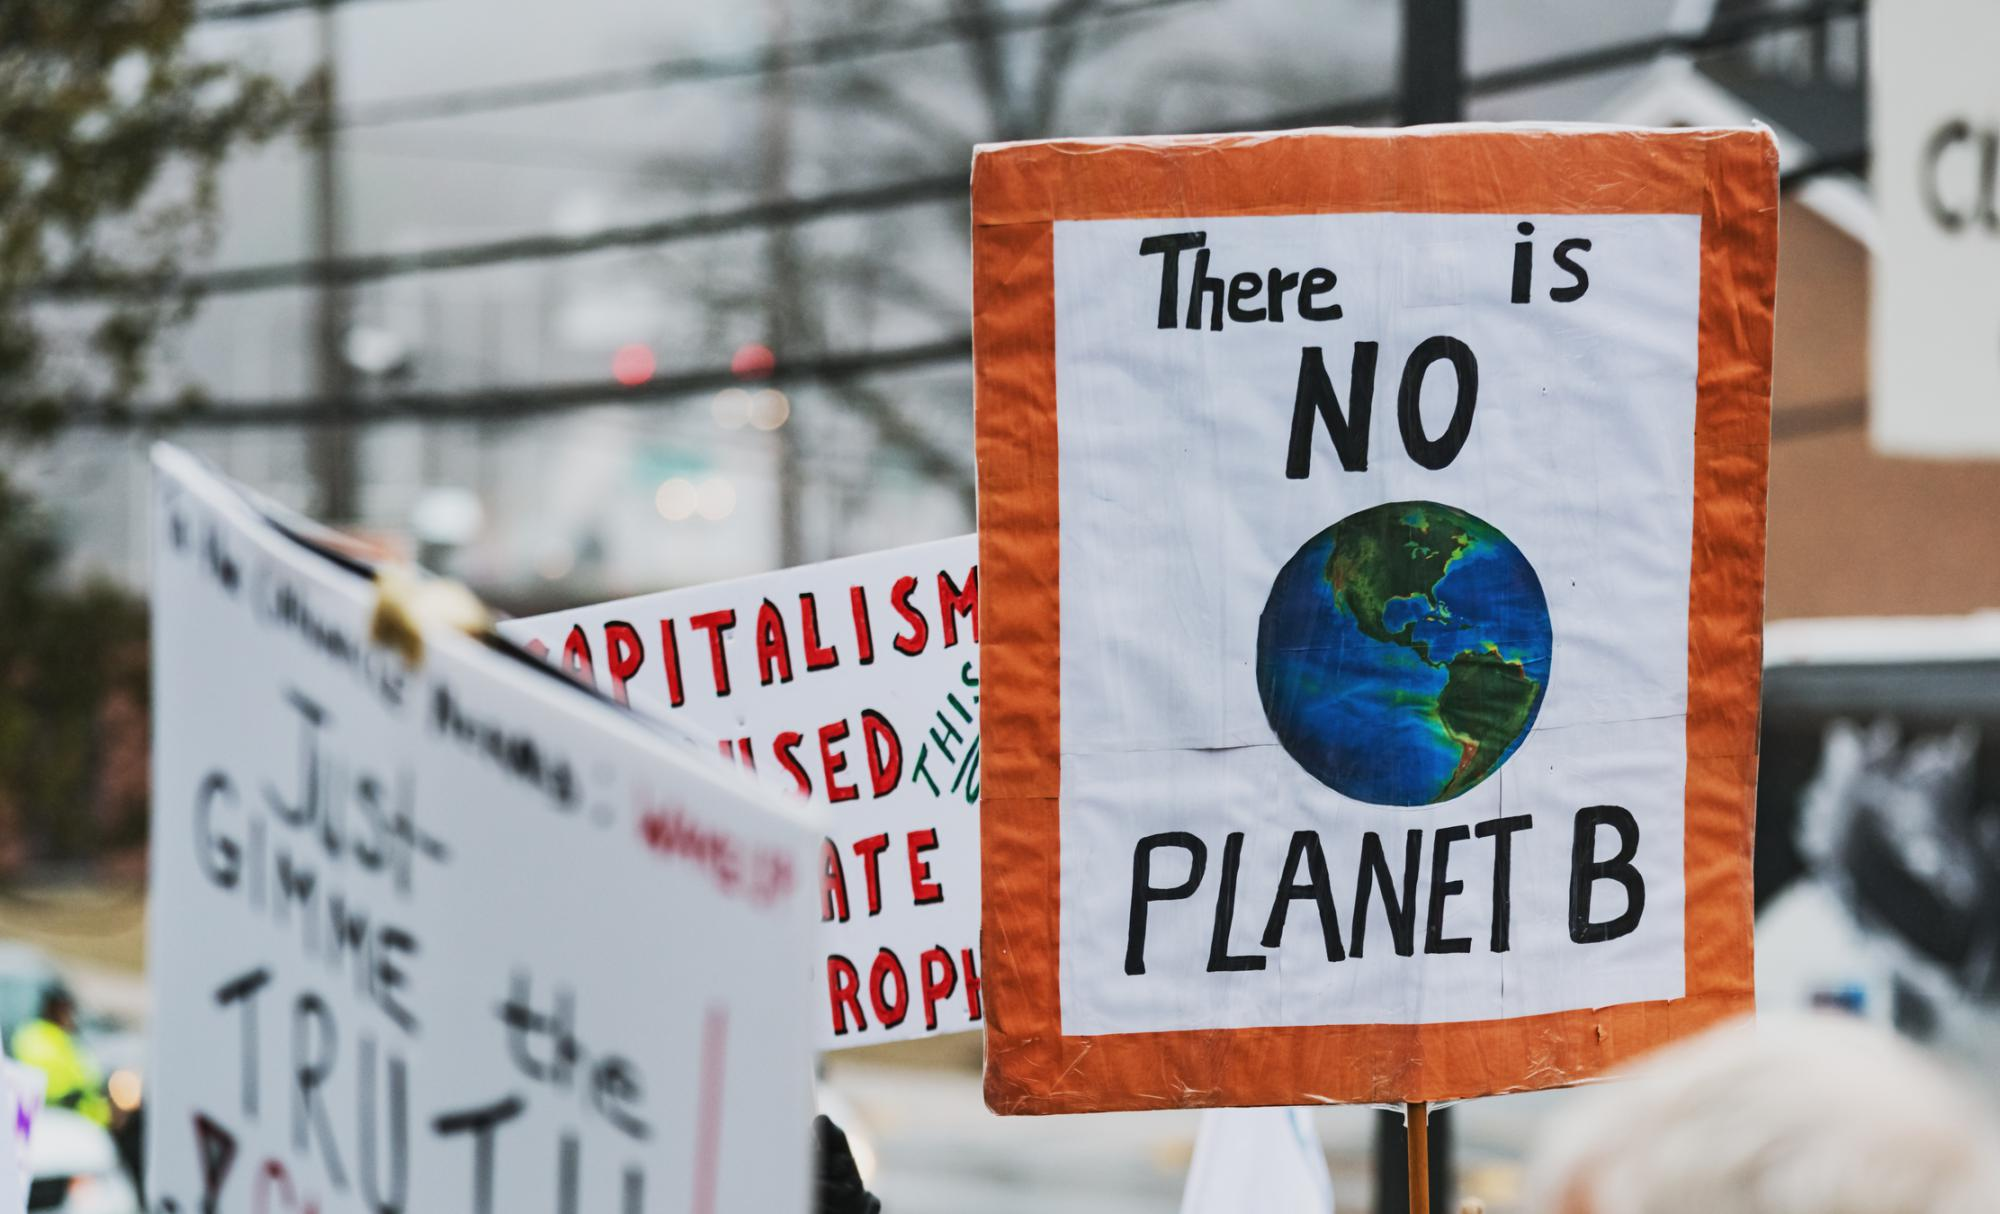 How Is Eco-Anxiety Tied To Climate Change? - Science World